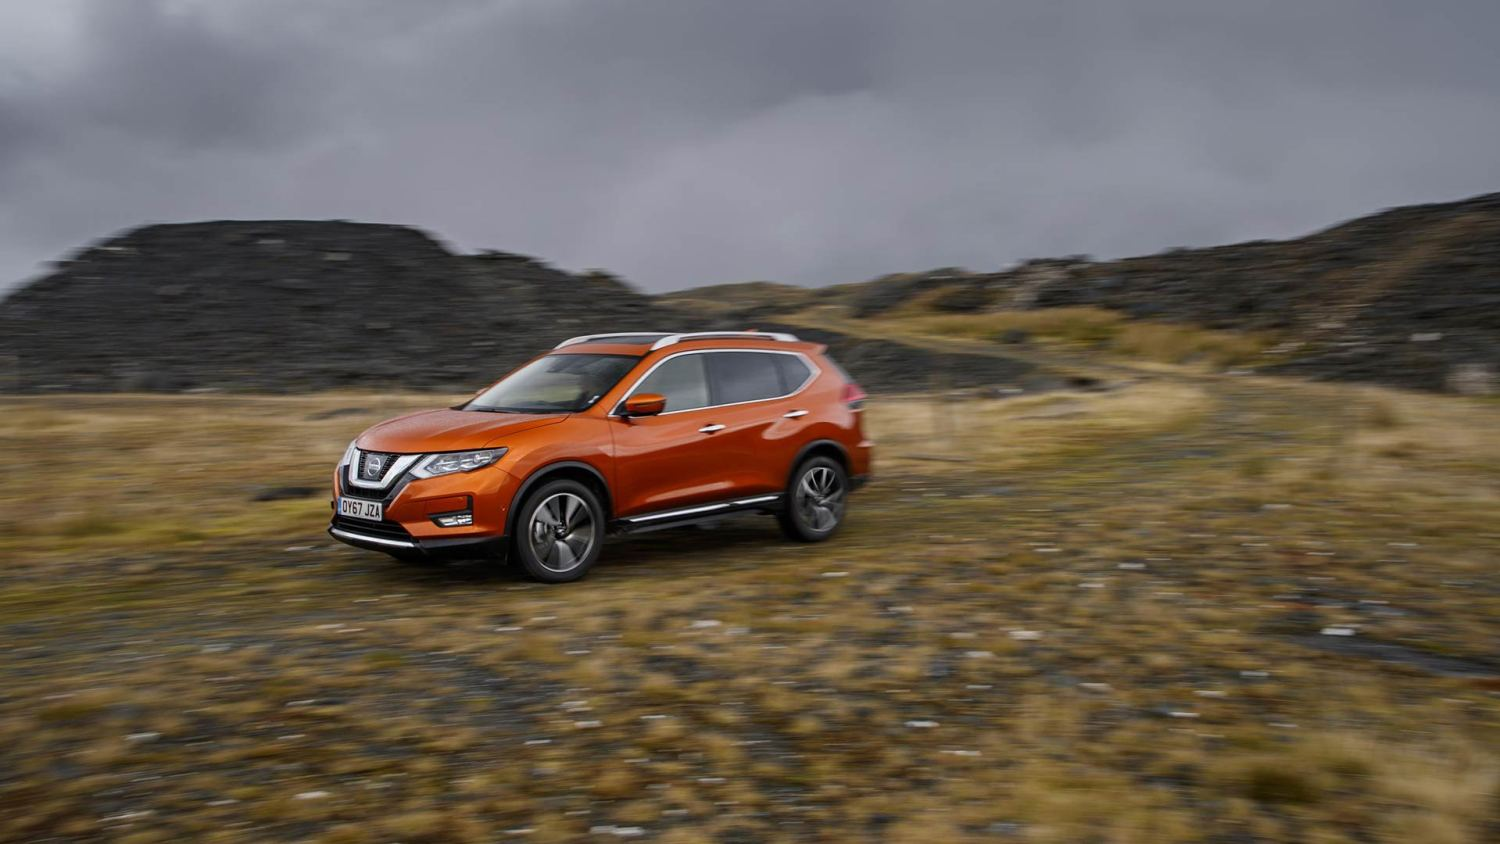 Nissan X-Trail Sunderland Brexit Everything You Need To Know